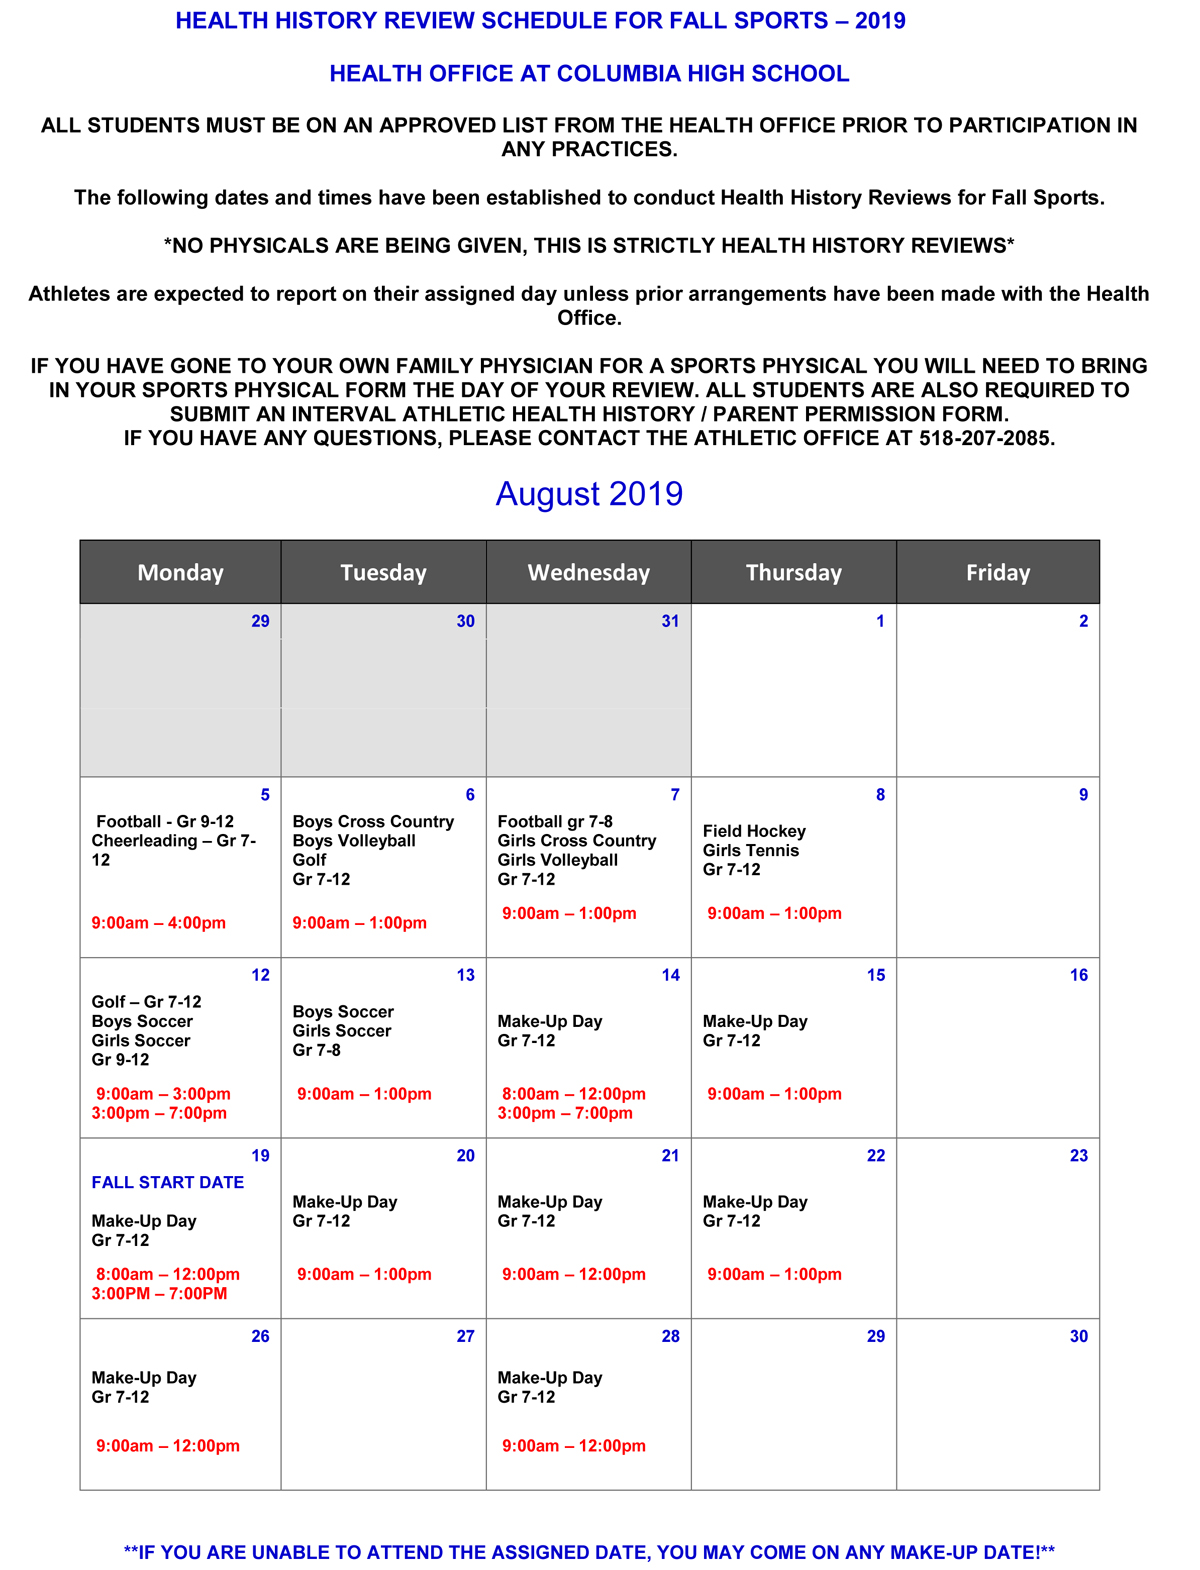 Calendar dates for Fall 2019 Health History Review